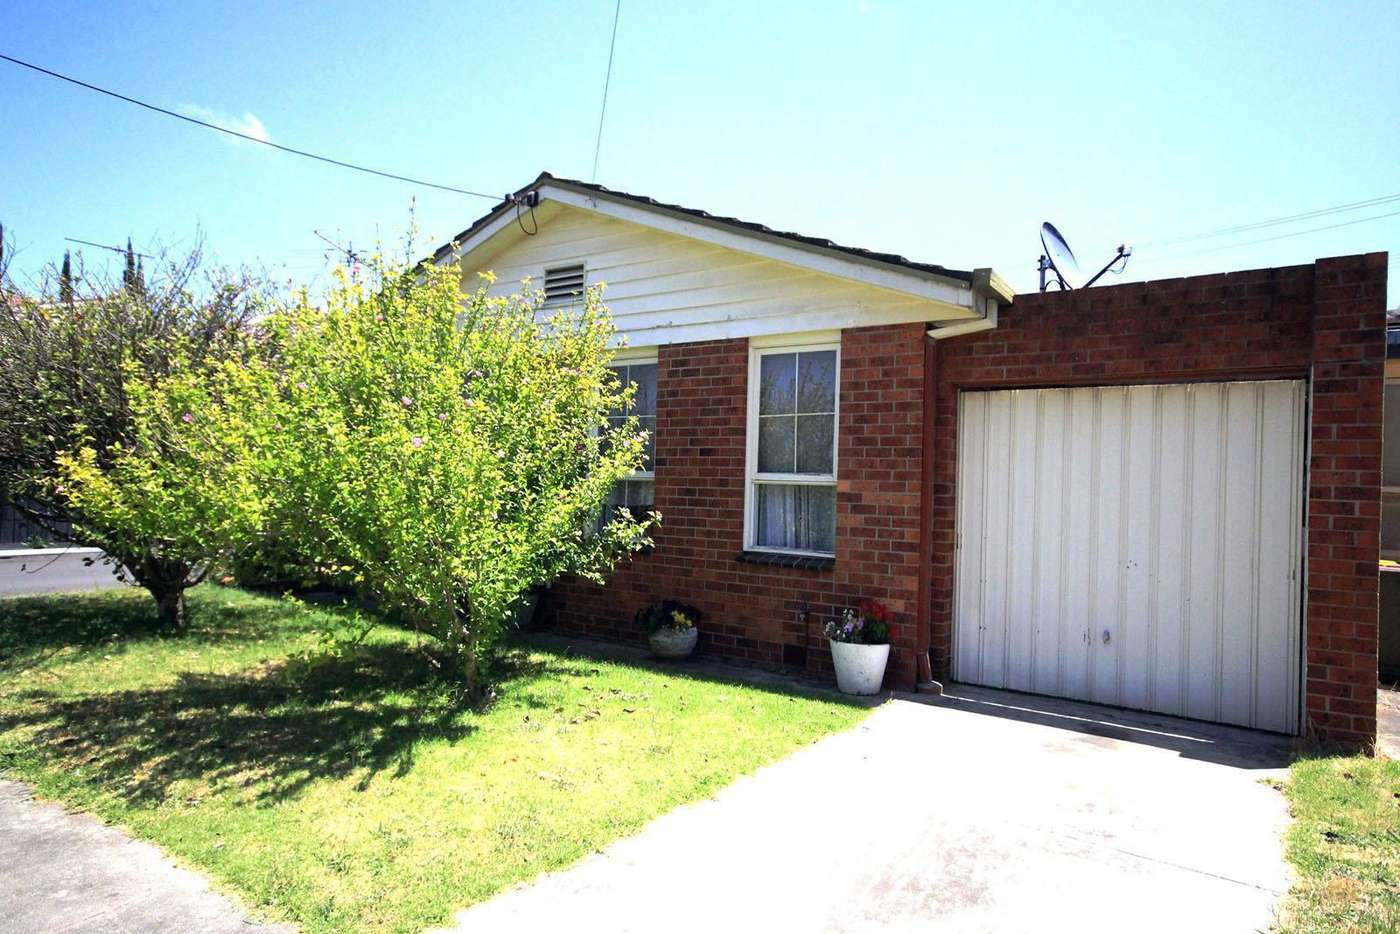 Seventh view of Homely house listing, 7 Glenleith Court, Geelong VIC 3220